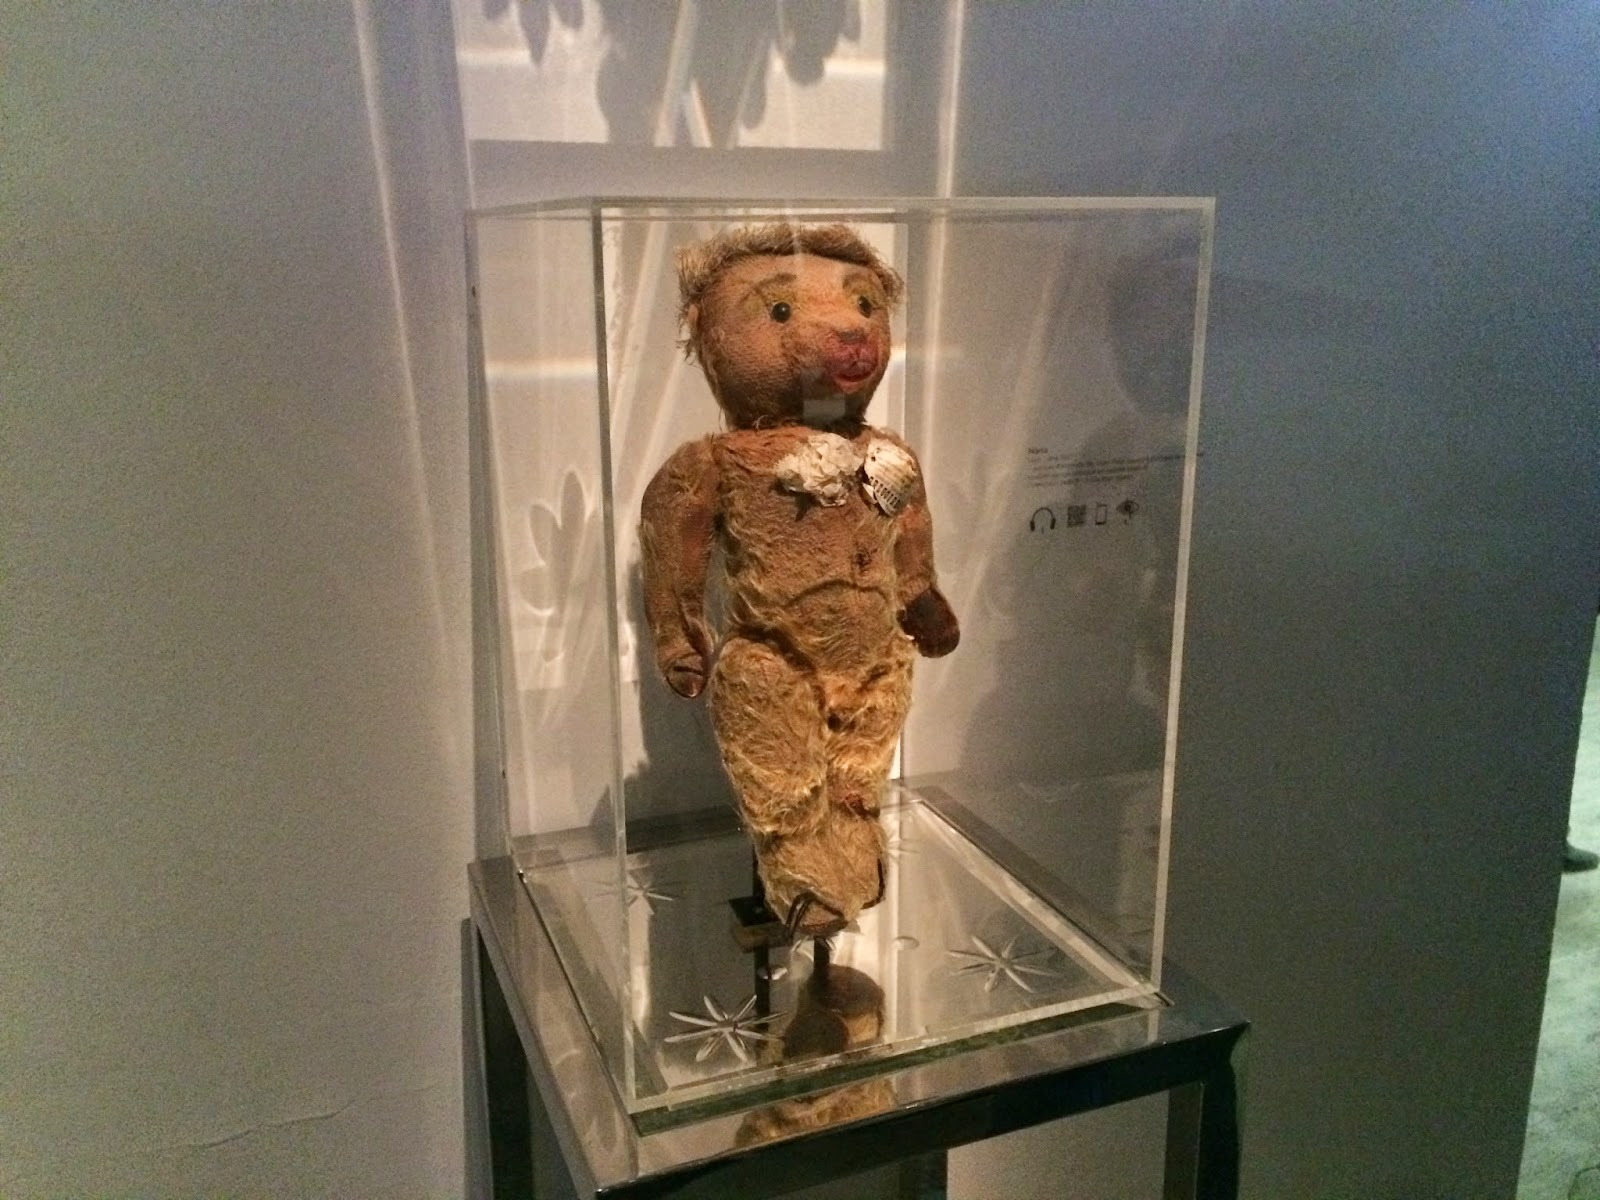 Nana, Jean Paul Gaultier's childhood teddy bear